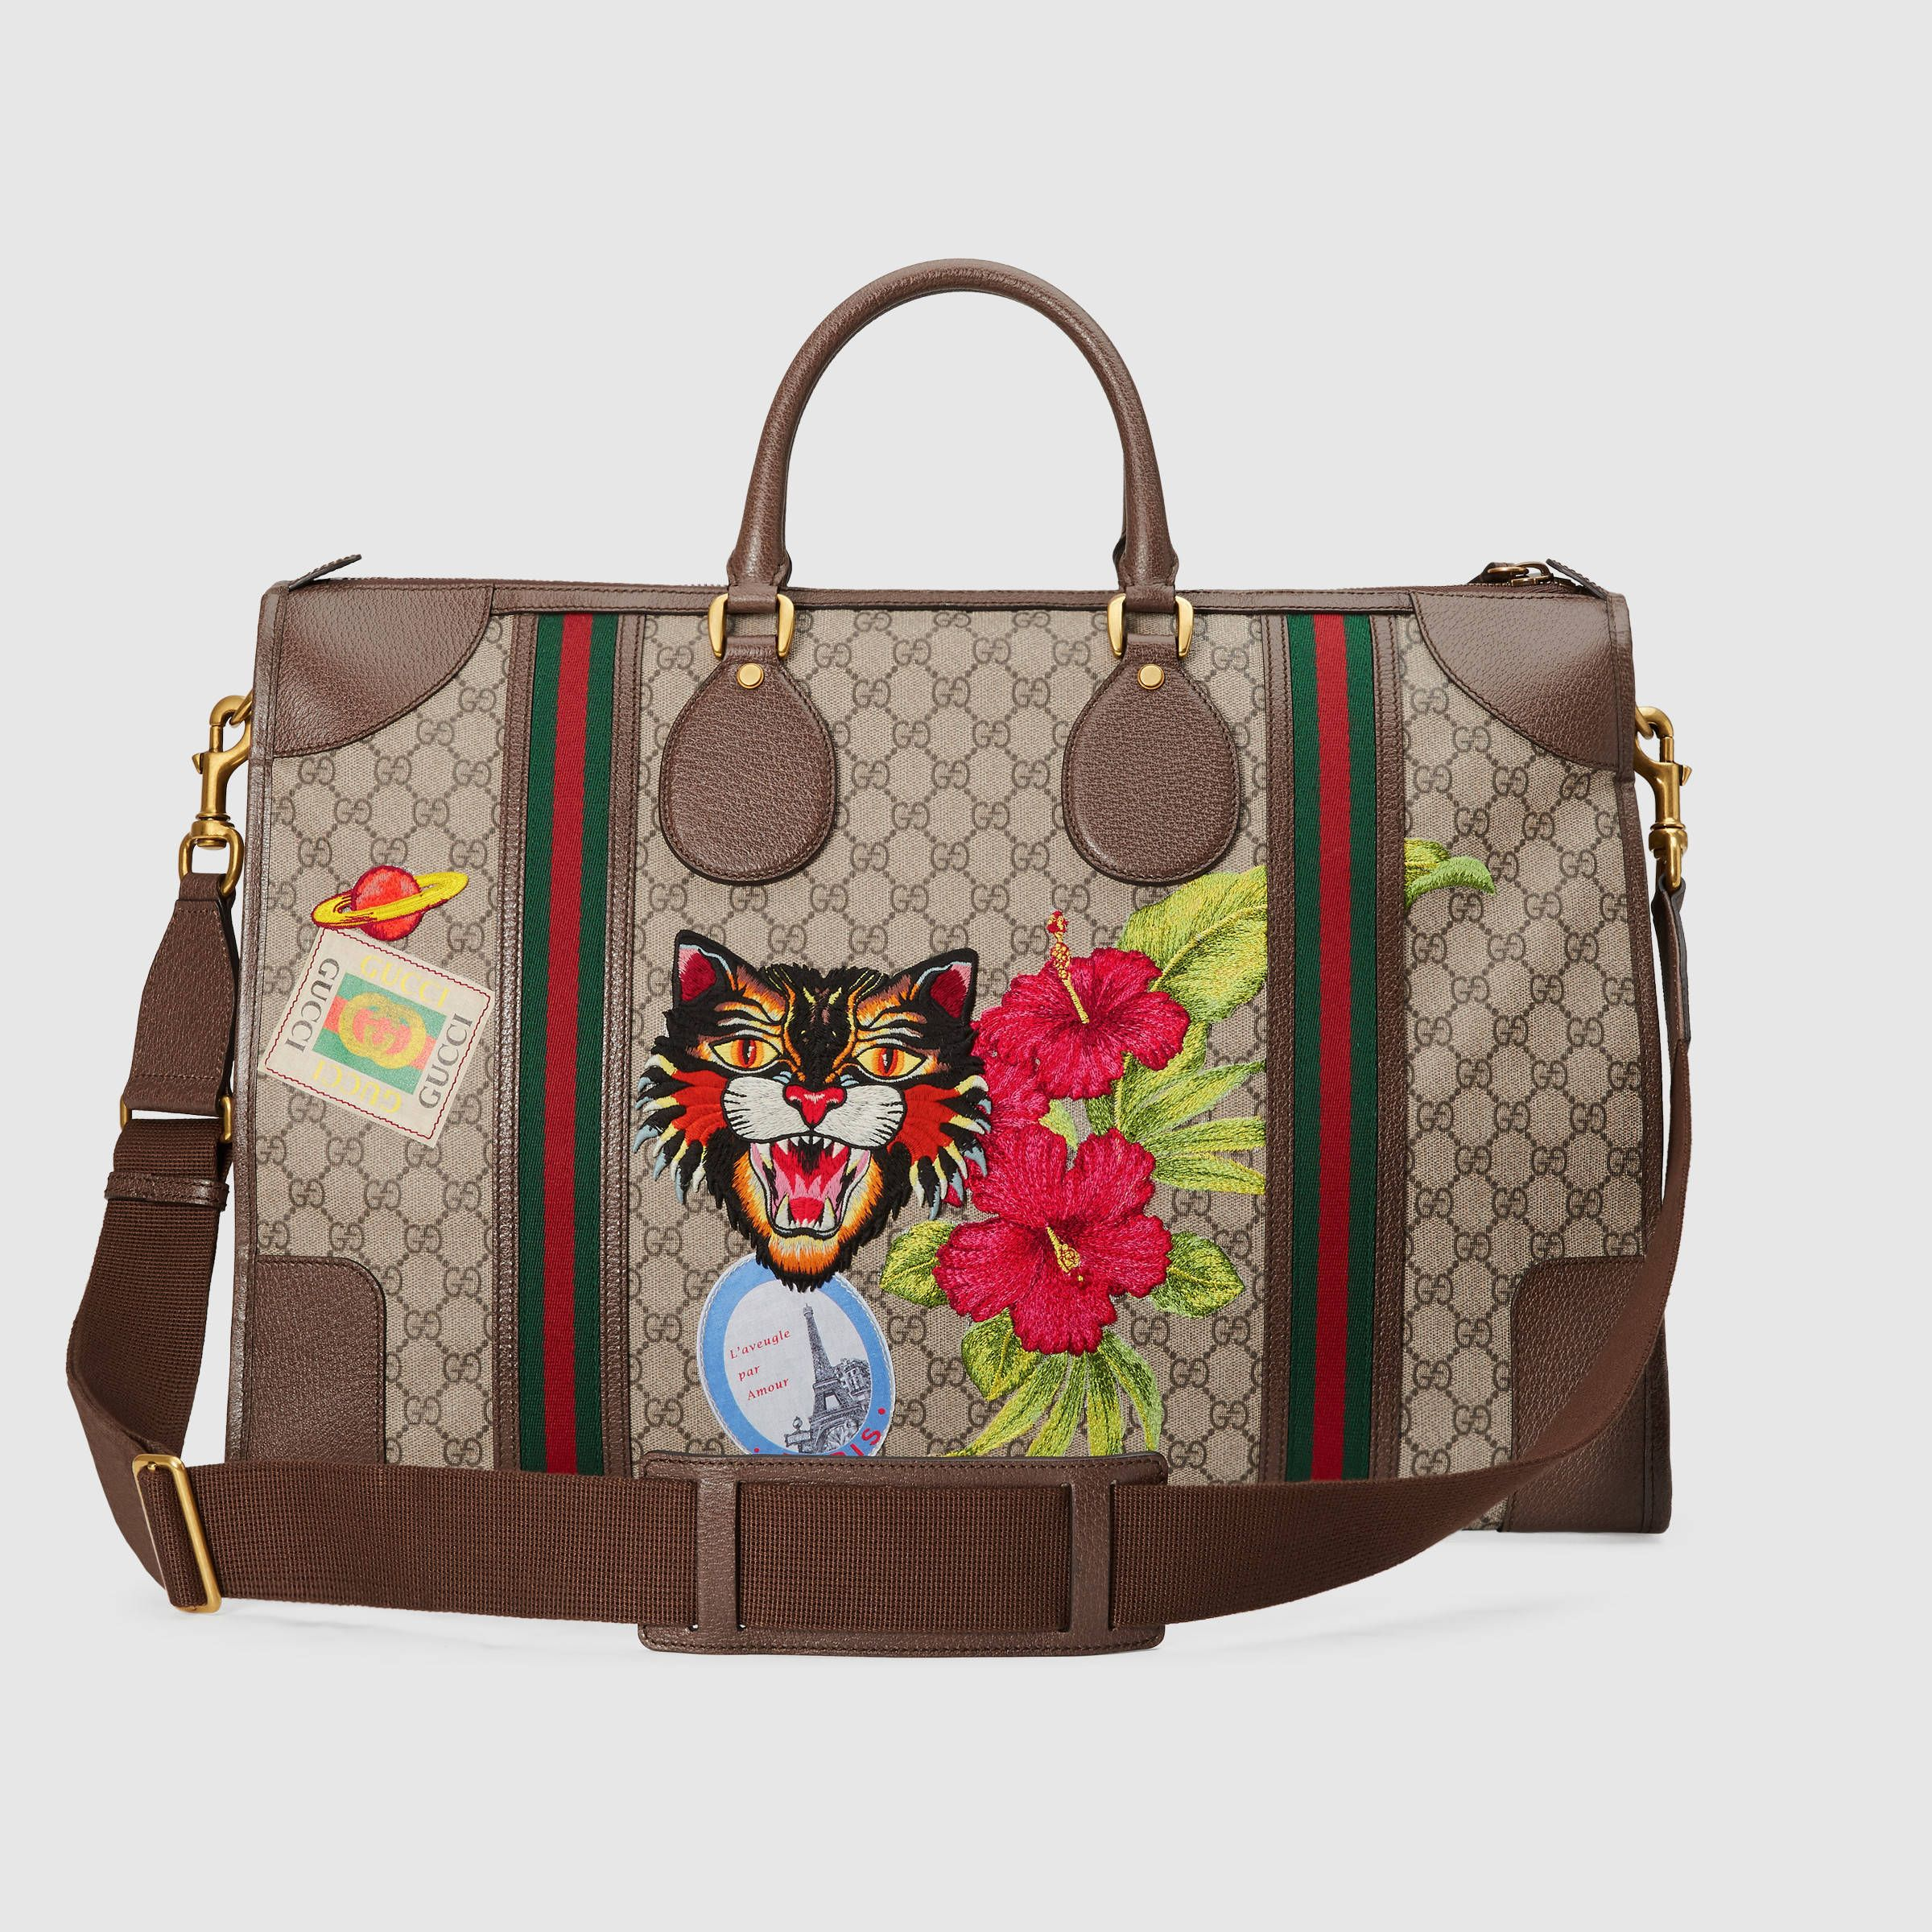 Courrier soft GG Supreme duffle bag   Bags, Bags and more Bags ... b0bf6f28c76